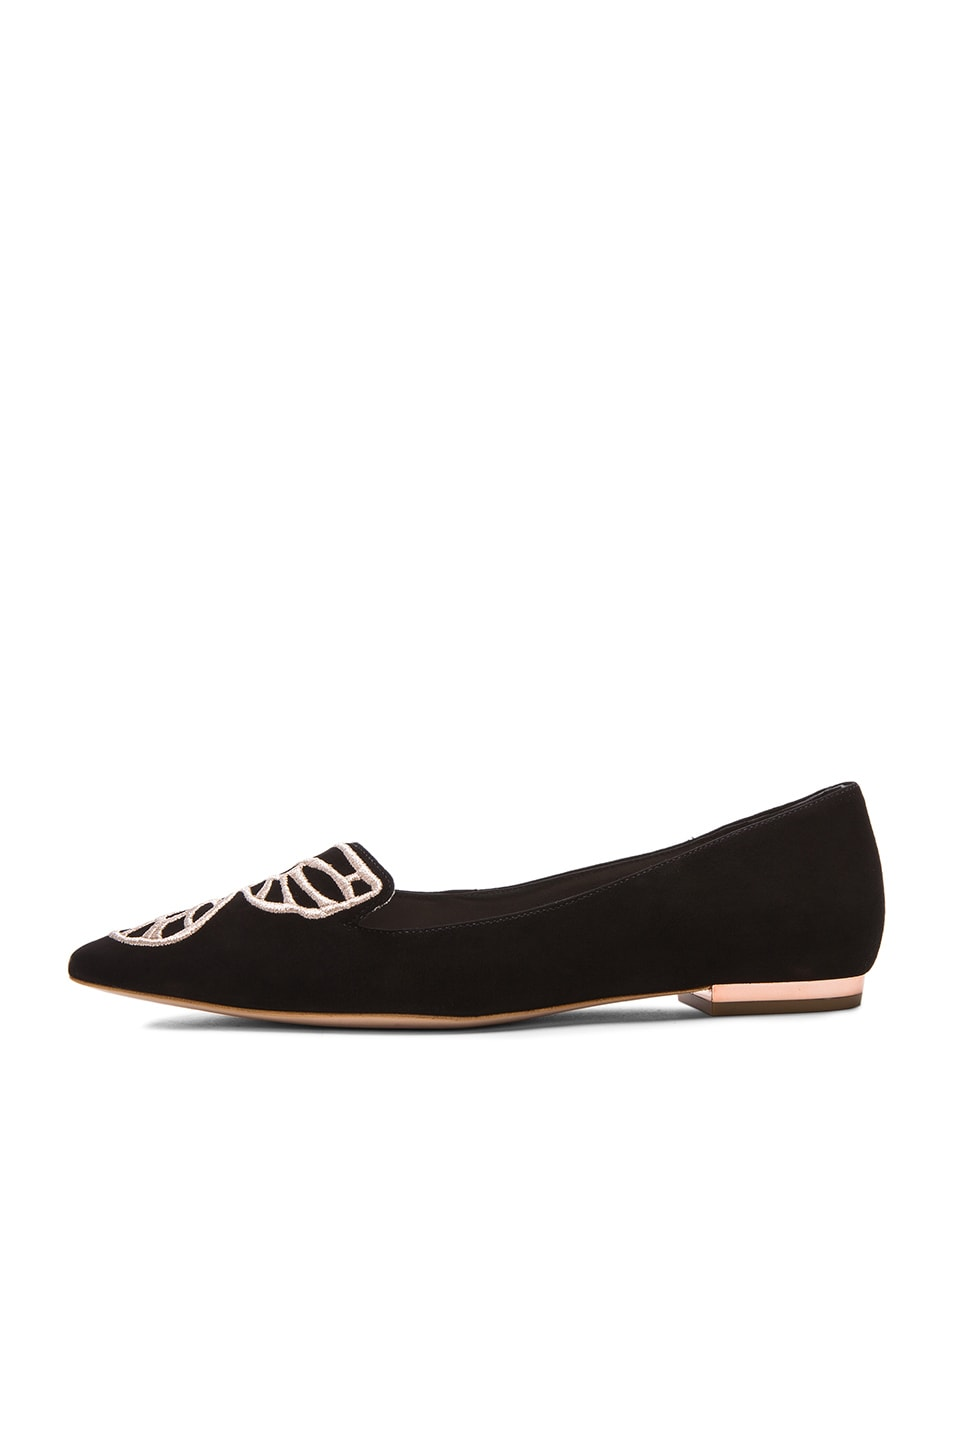 Image 5 of Sophia Webster Bibi Butterfly Suede Flats in Black & Rose Gold